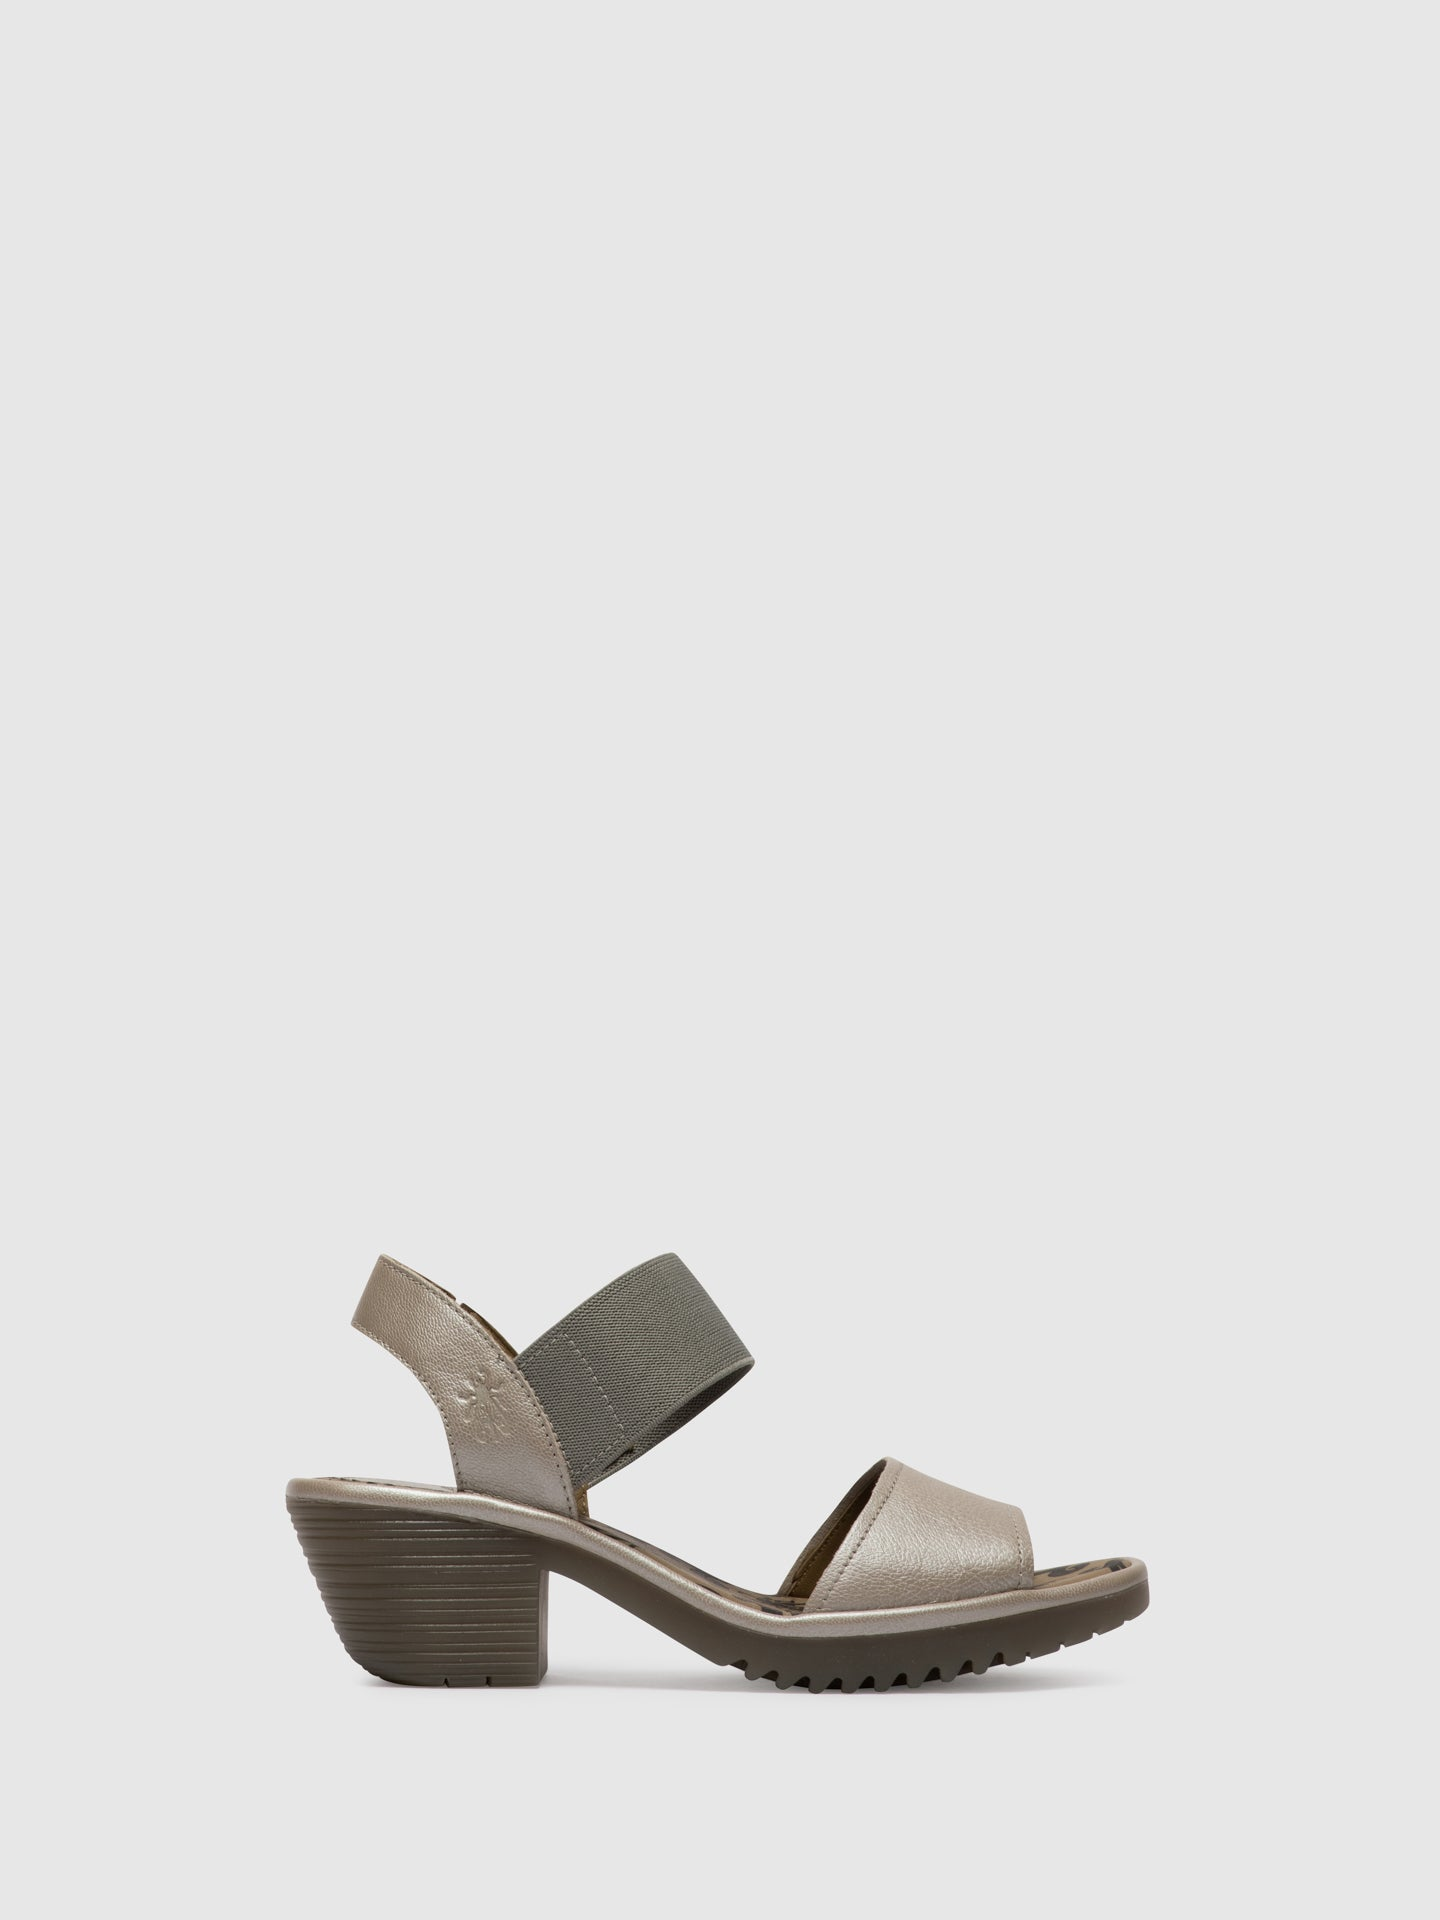 Fly London Silver Open Toe Sandals